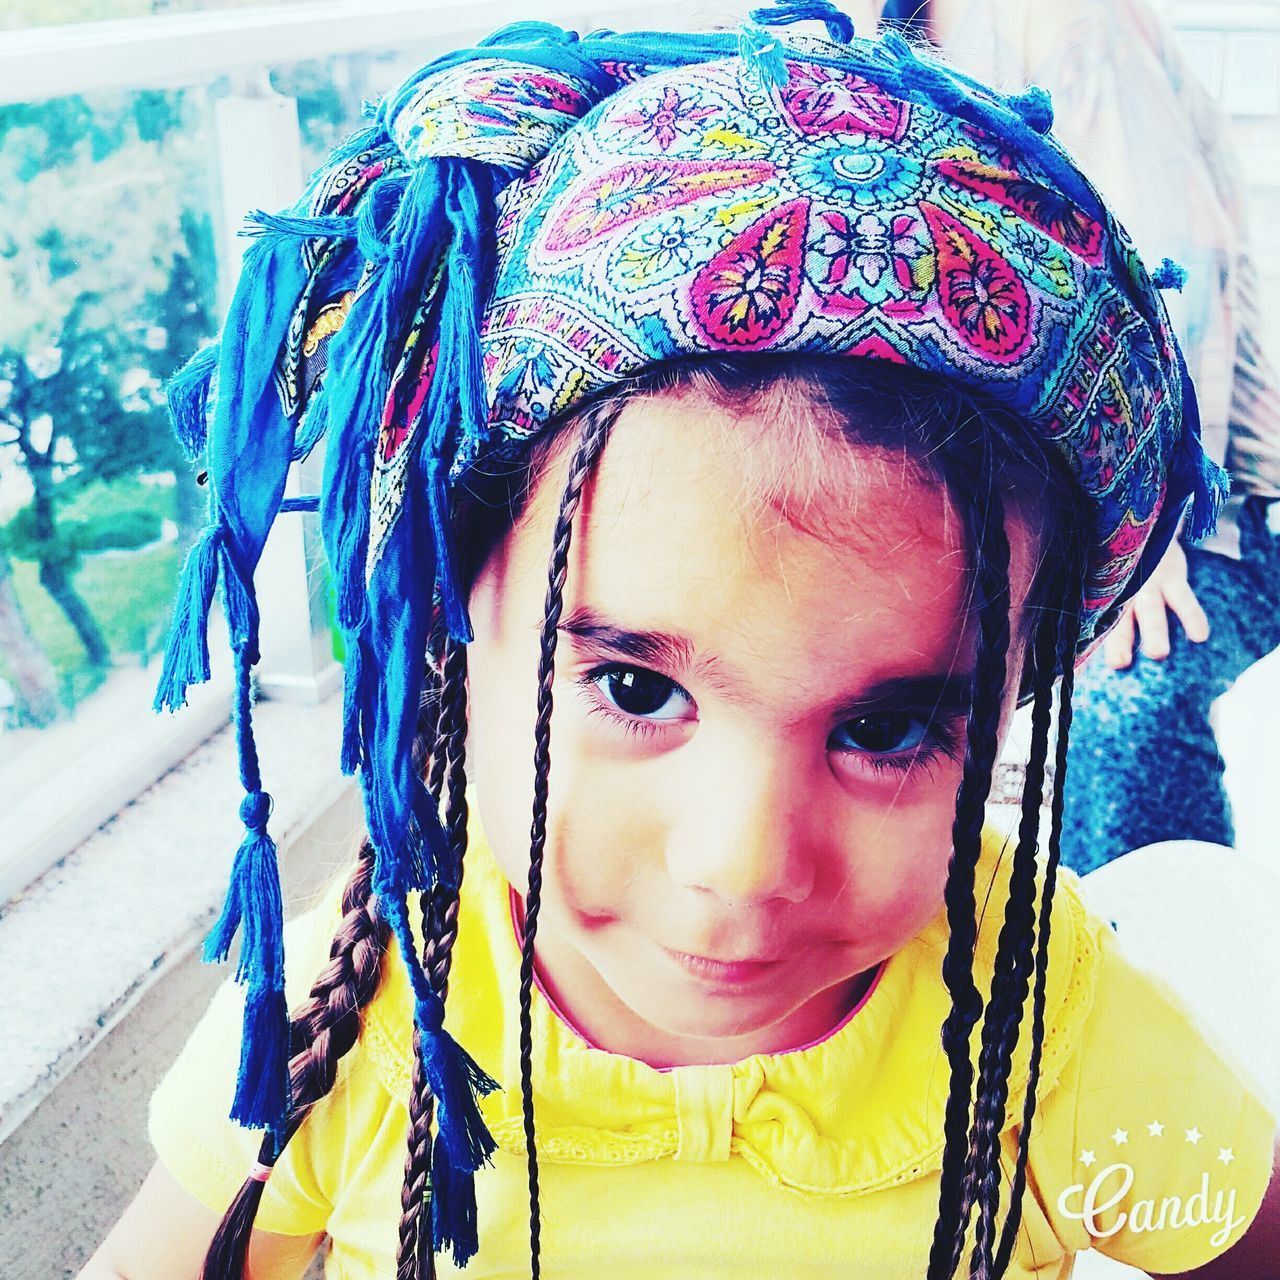 Sheismytreasure Mynephewısawesome Prettylittlegirl Children Photography Smilerforever Hello World Check This Out Turkeyphotooftheday Taking Photos Askimm..❤ MyNephew Teyzesinintektanesi Turkey Izmir Teyzesininboncugu